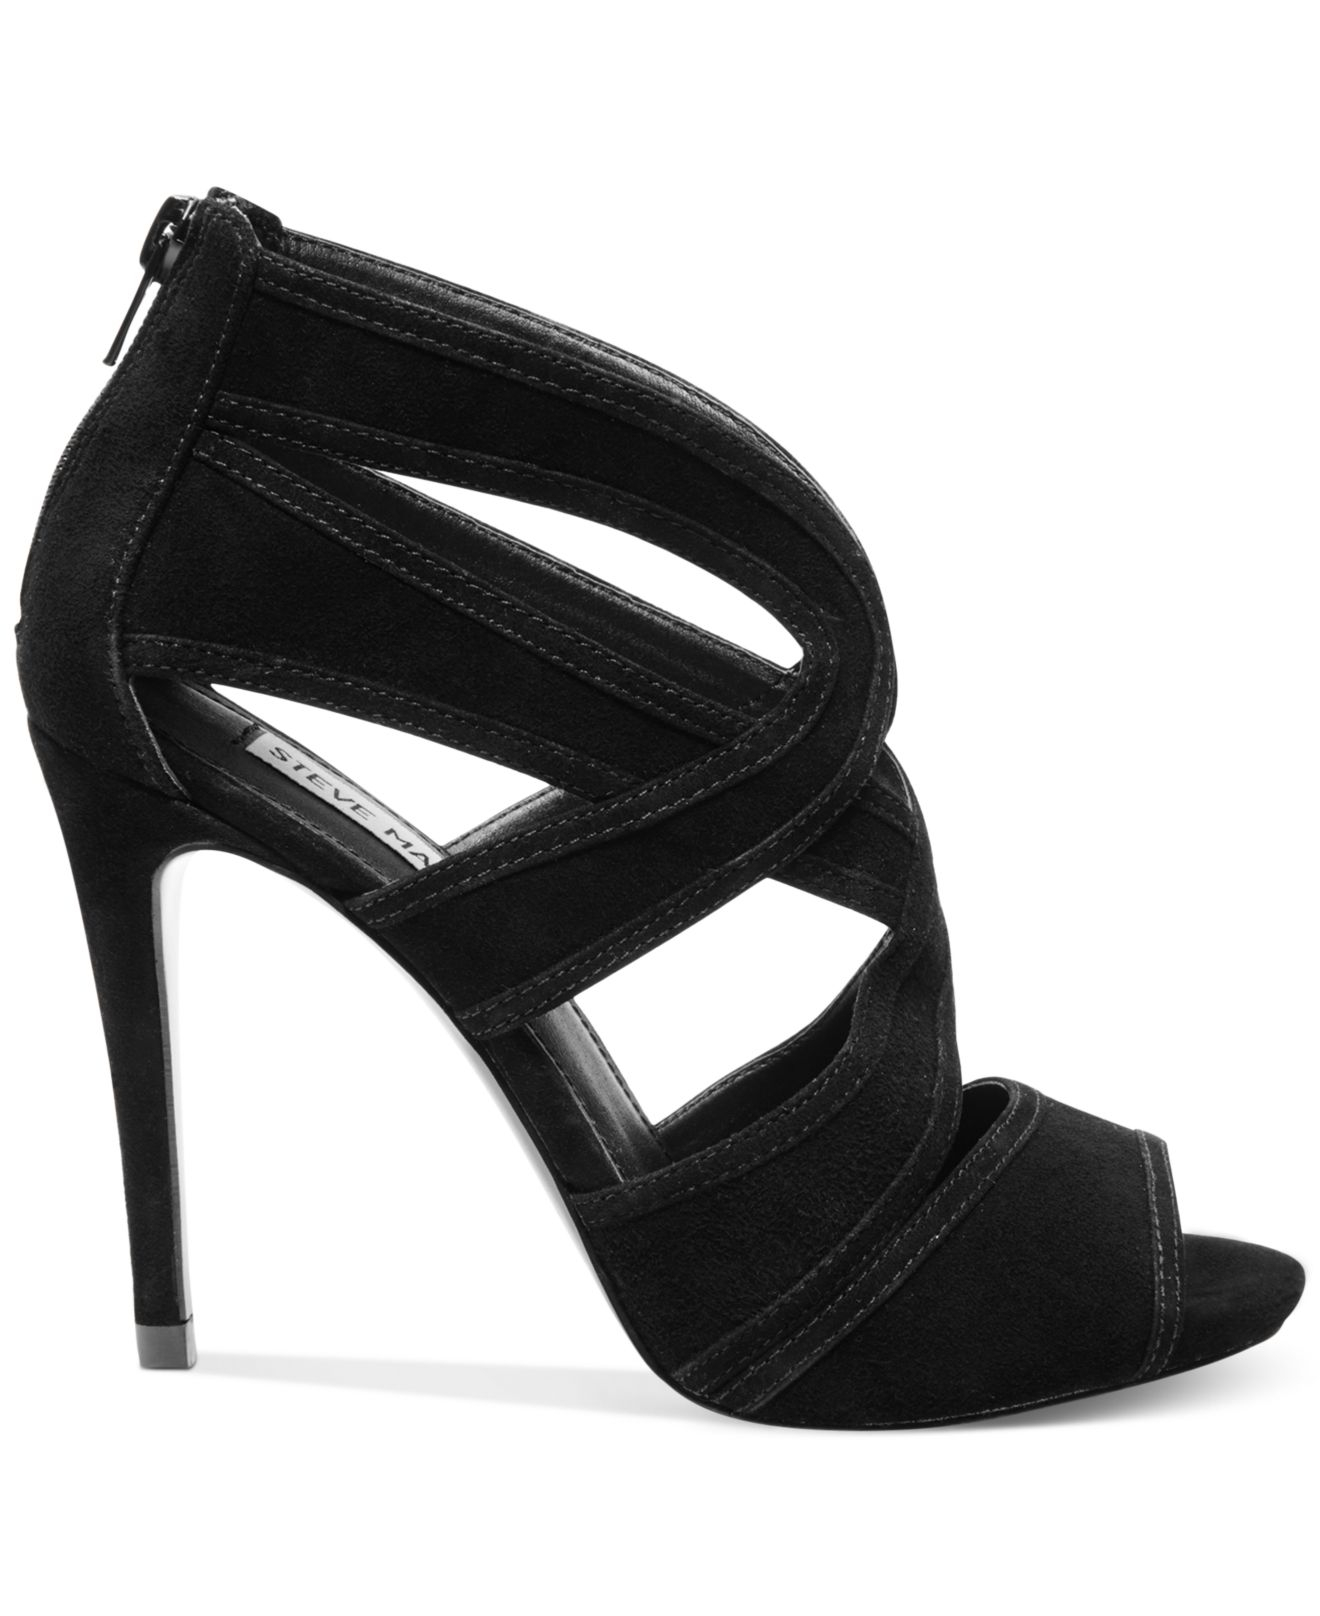 cdf0a580845 Lyst - Steve Madden Women S Immence Strappy Sandals in Black